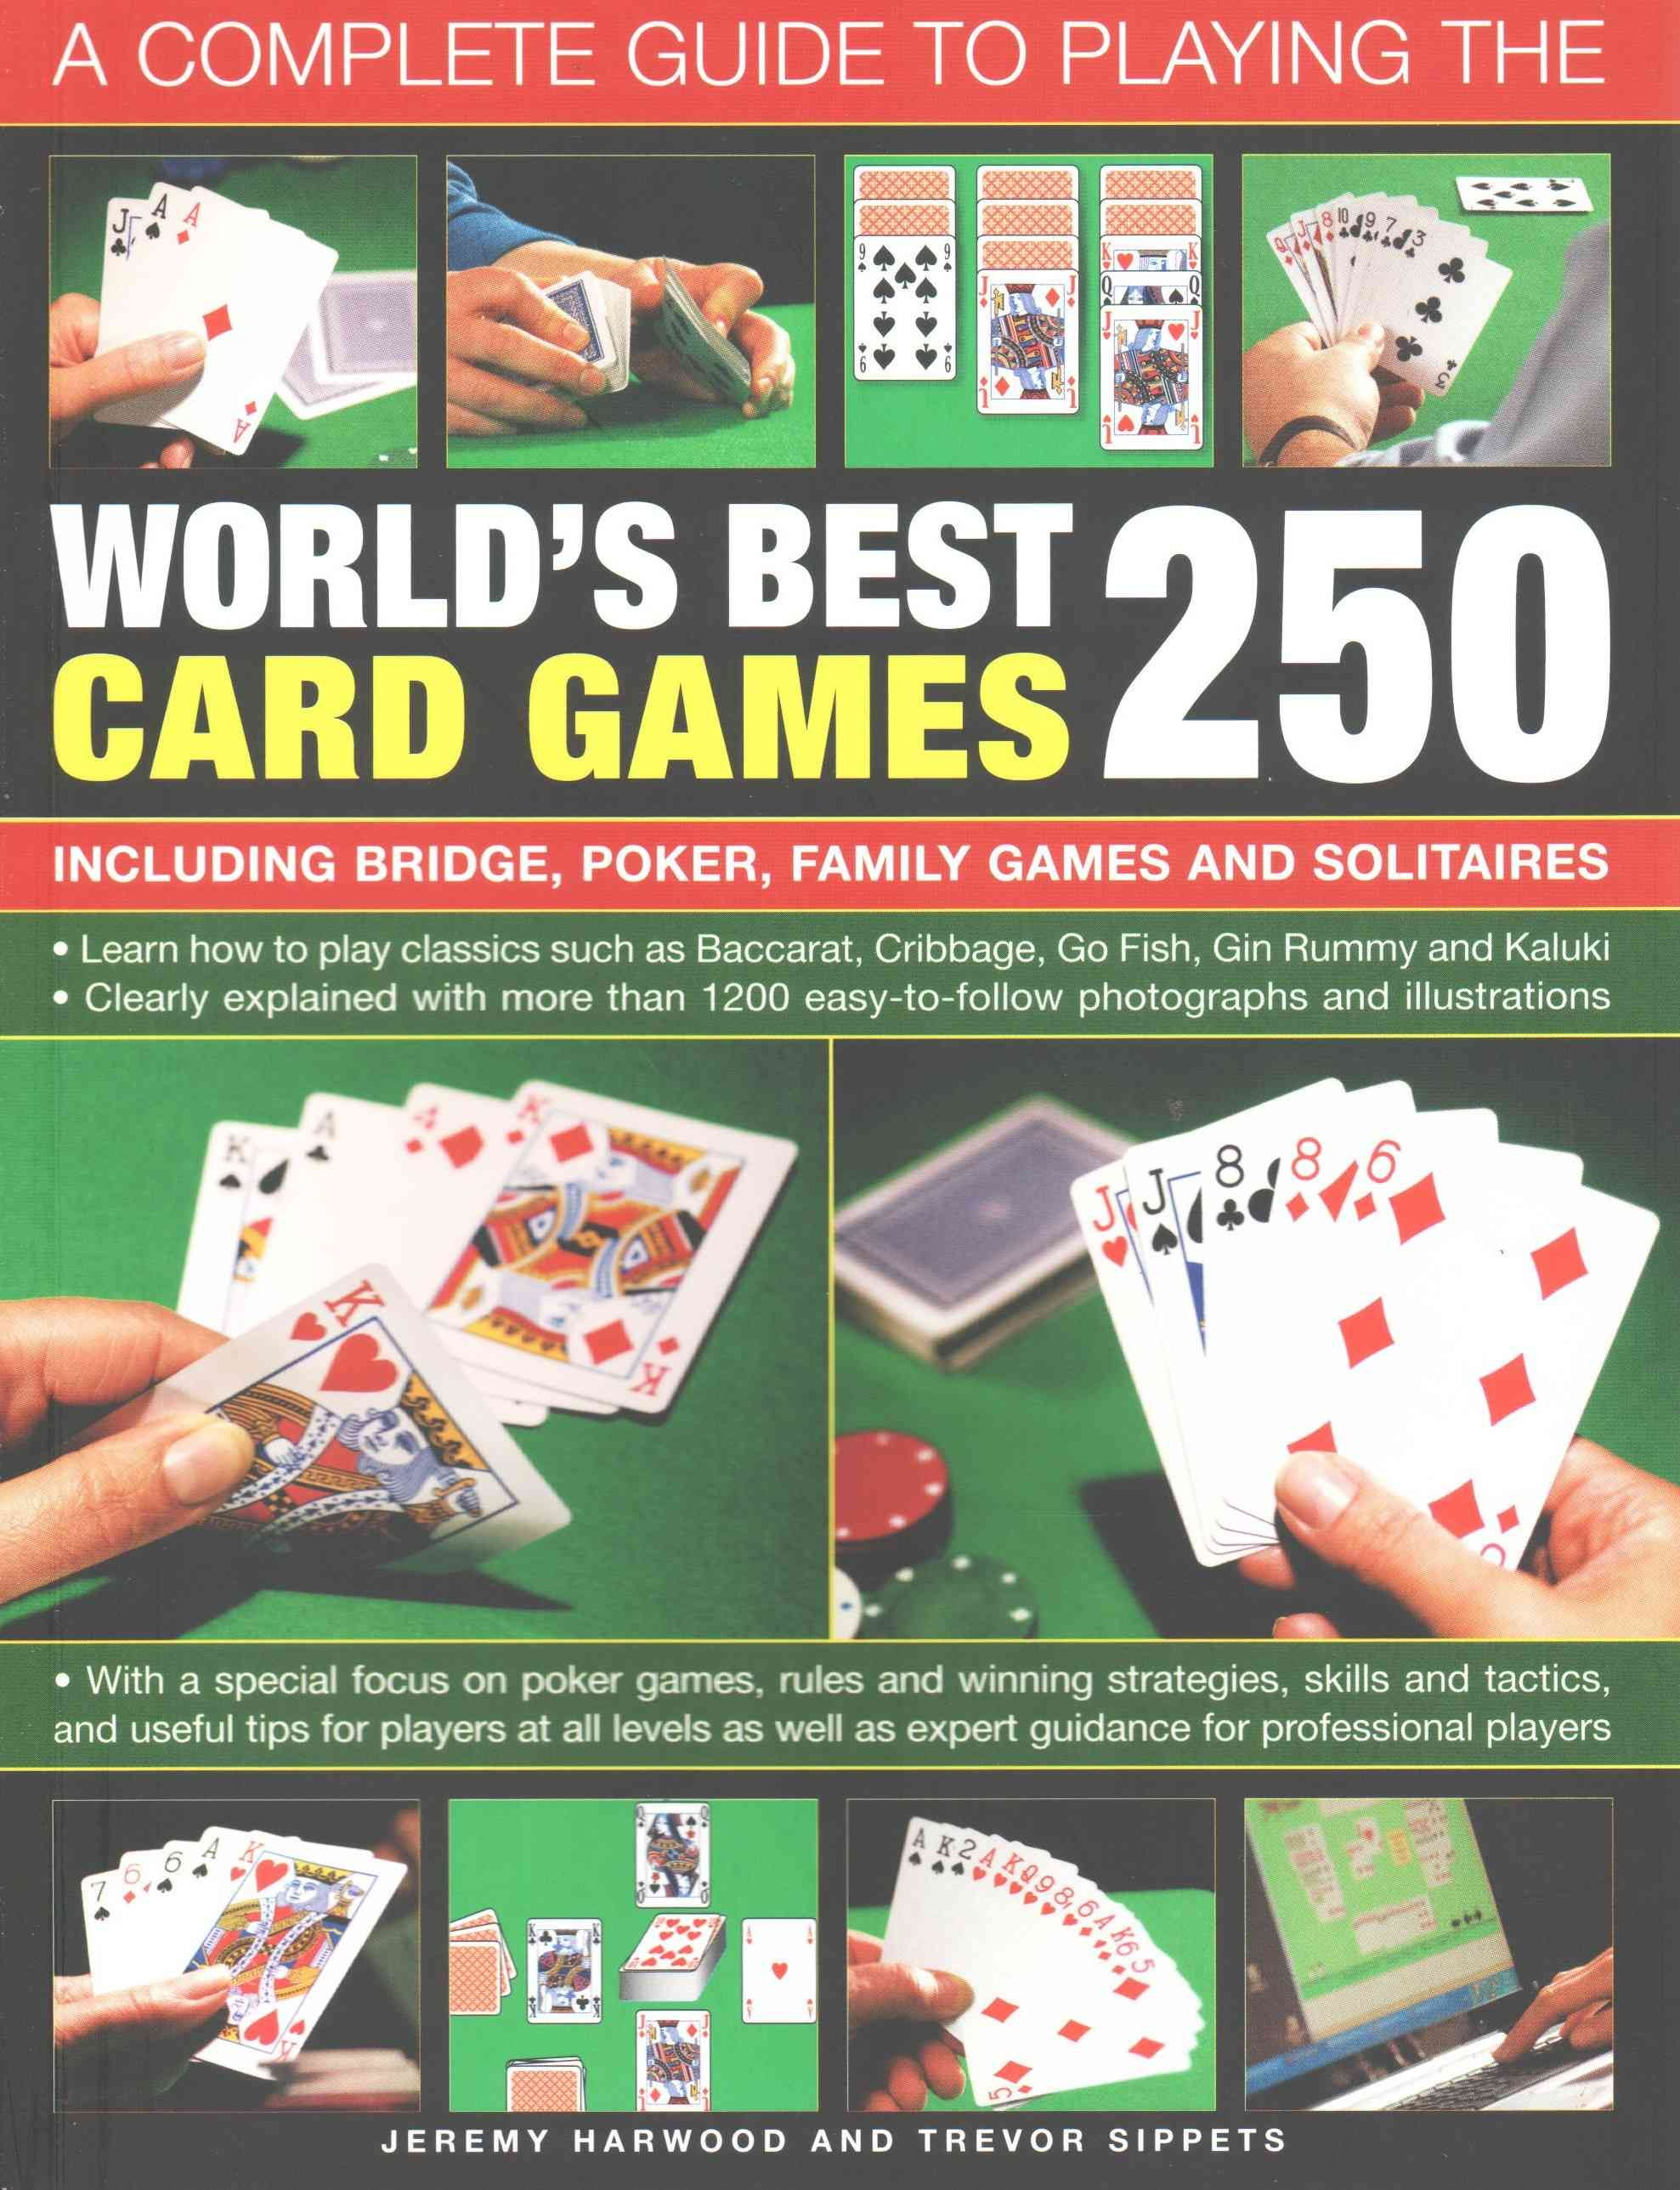 Learn how to play classics such as baccarat, cribbage, go